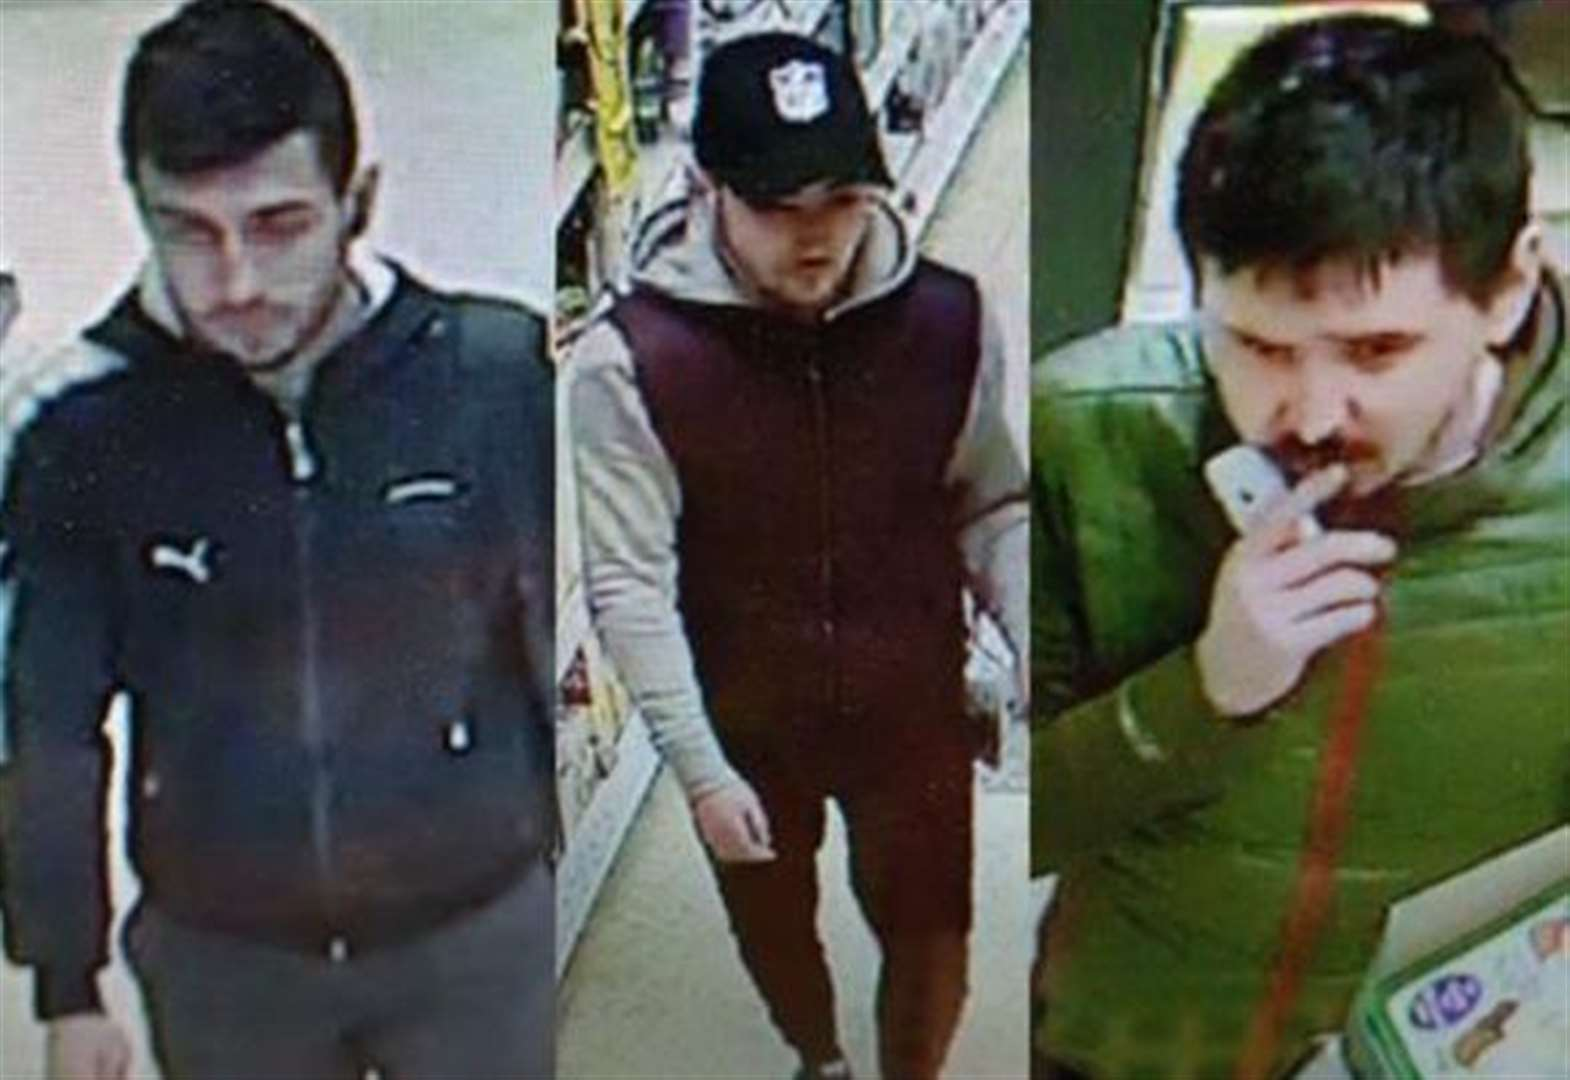 Trio wanted by police in connection with incidents at supermarket